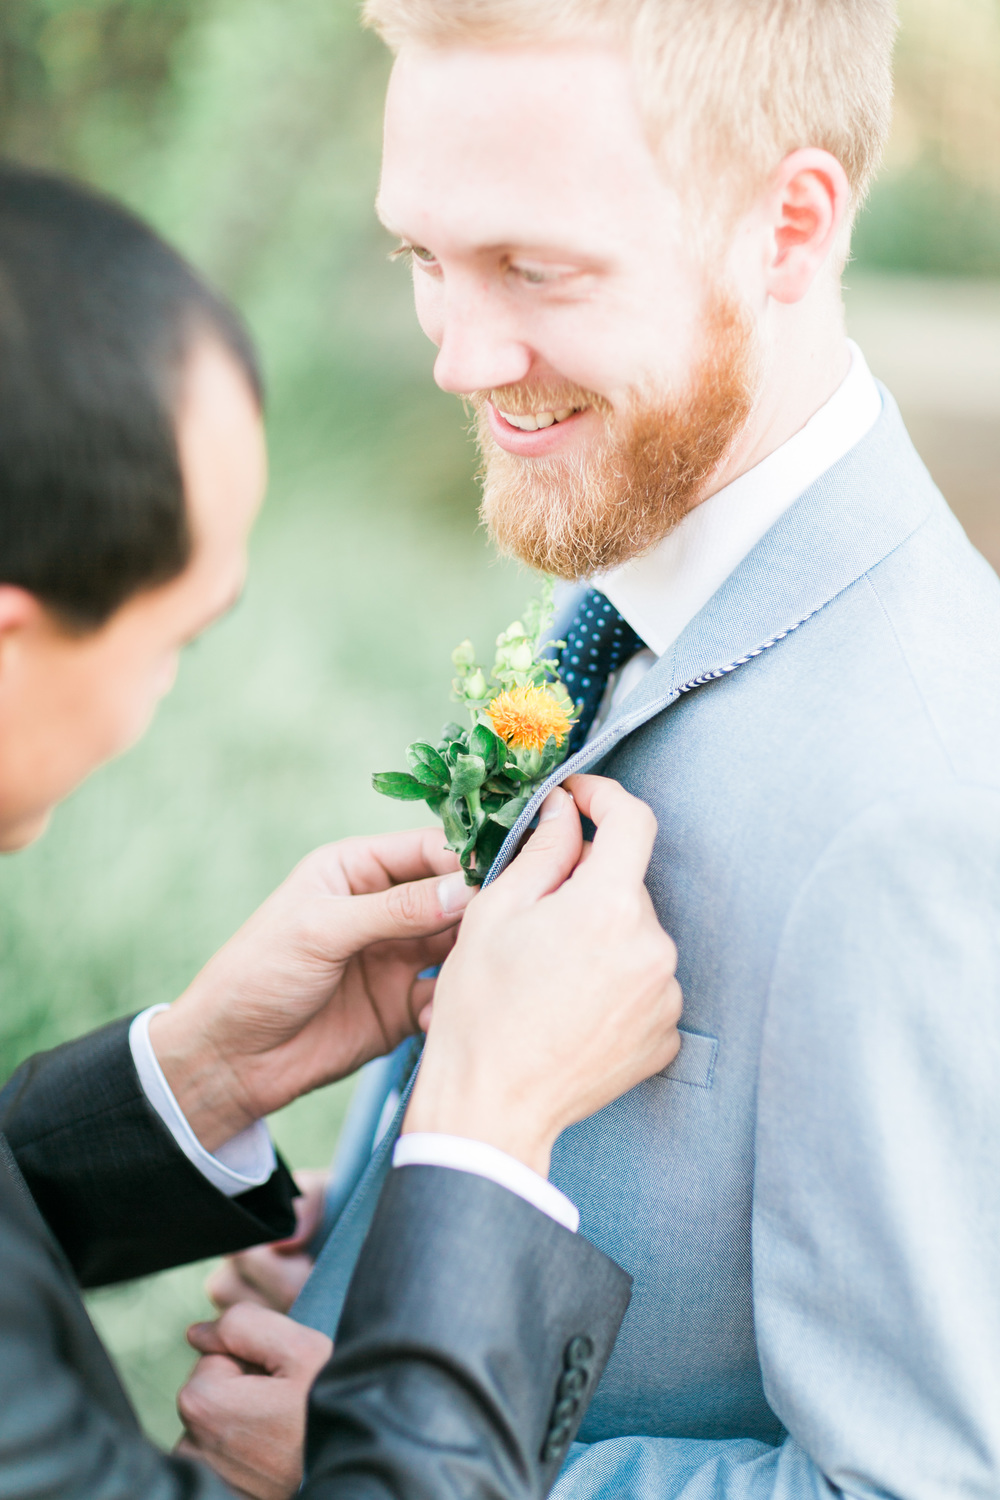 Groomsmen pinning on groom's boutonniere